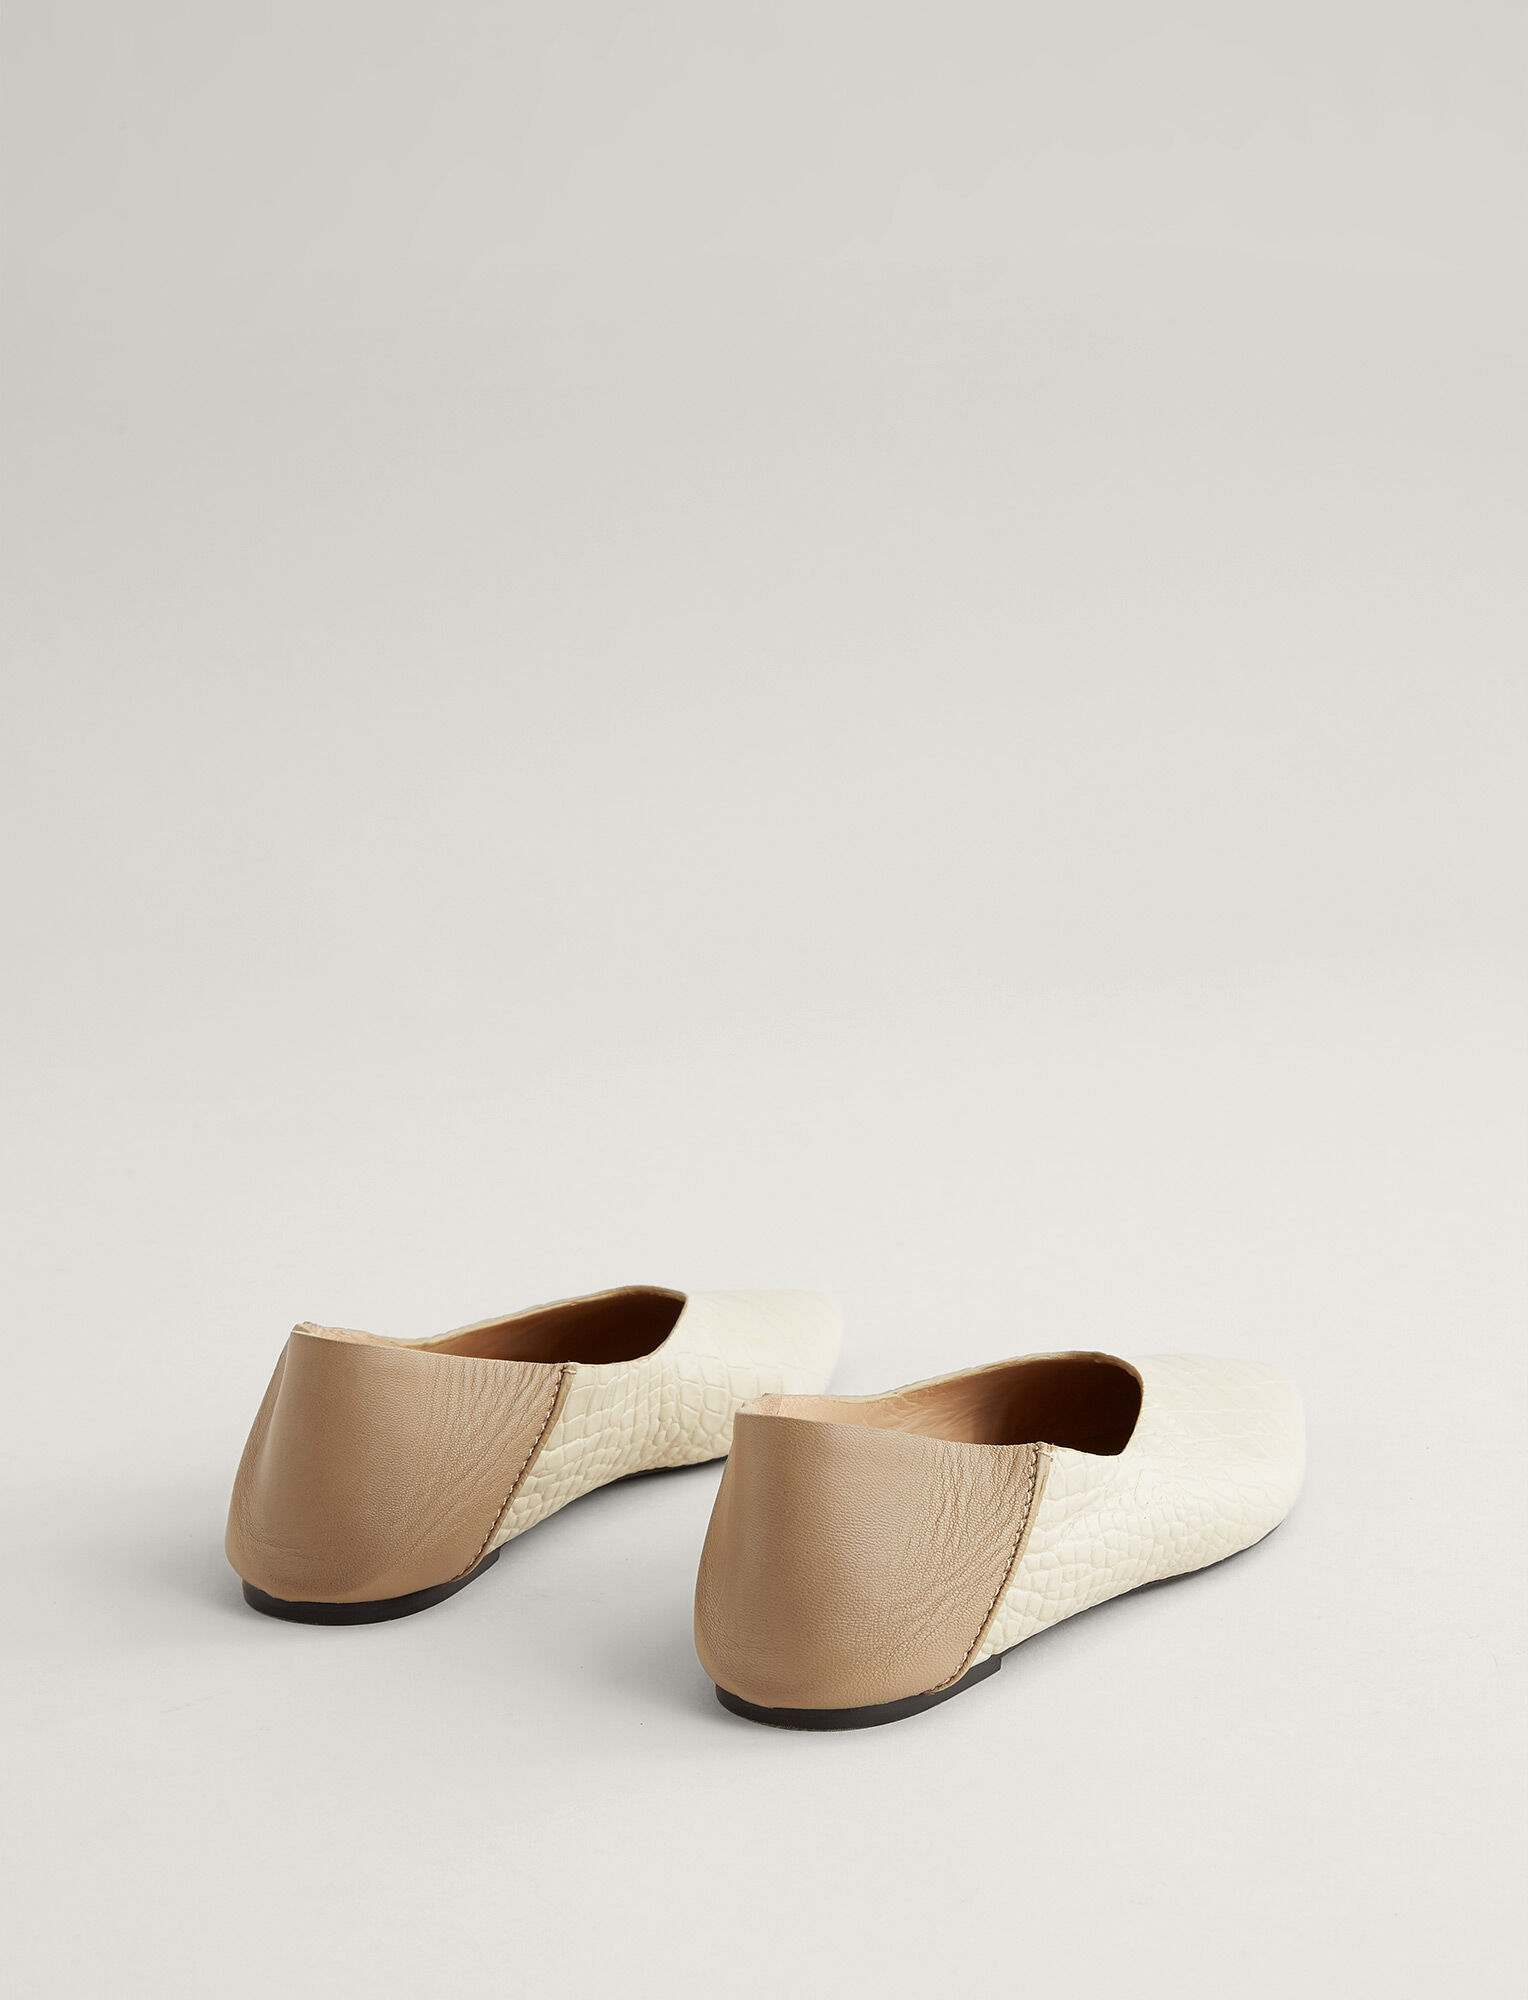 Joseph, Anoud Leather Ballerina, in BEIGE